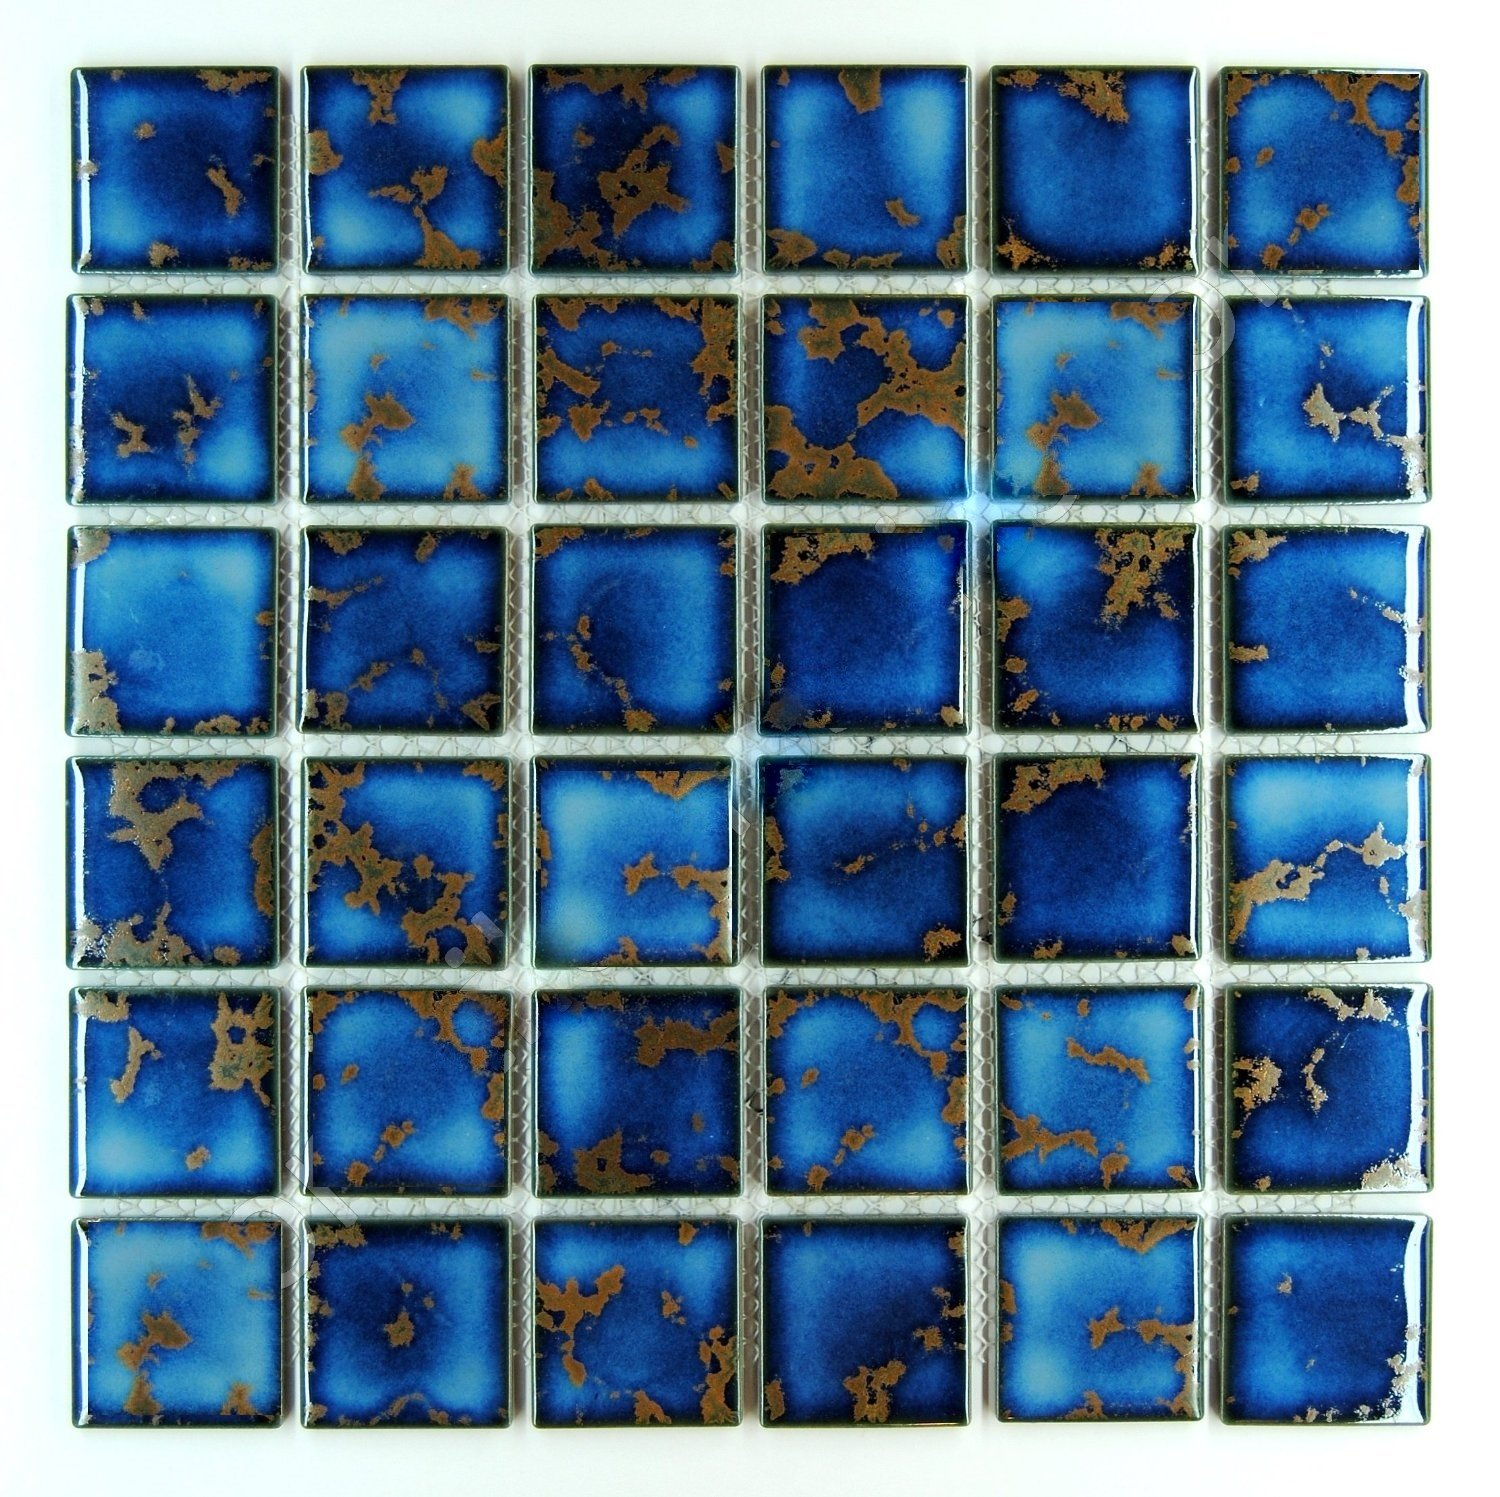 Vogue Premium Quality Square Blue Calacatta Porcelain Mosaic Glossy Tile for Bathroom Floors, Walls and Kitchen Backsplashes, Pool Tile Designed in Italy (12''x12'' - 1 Square Foot)